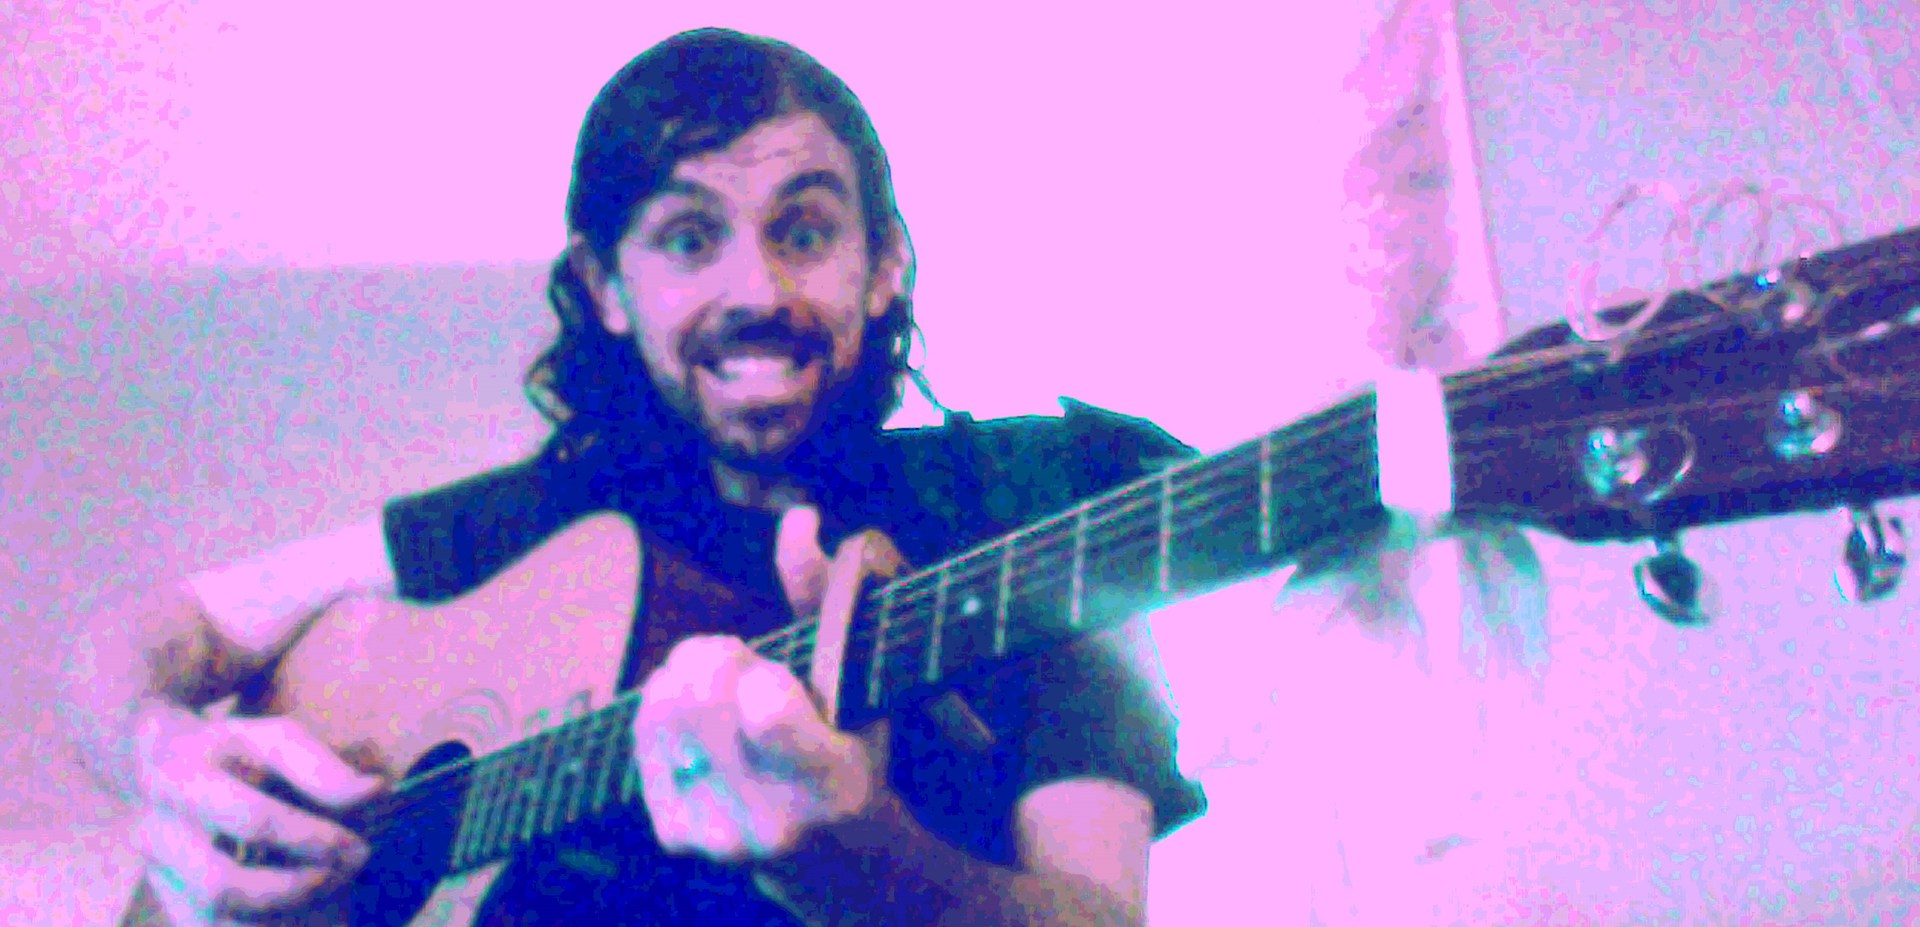 Mr See in a stylized pink and green image, playing his guitar and smiling large